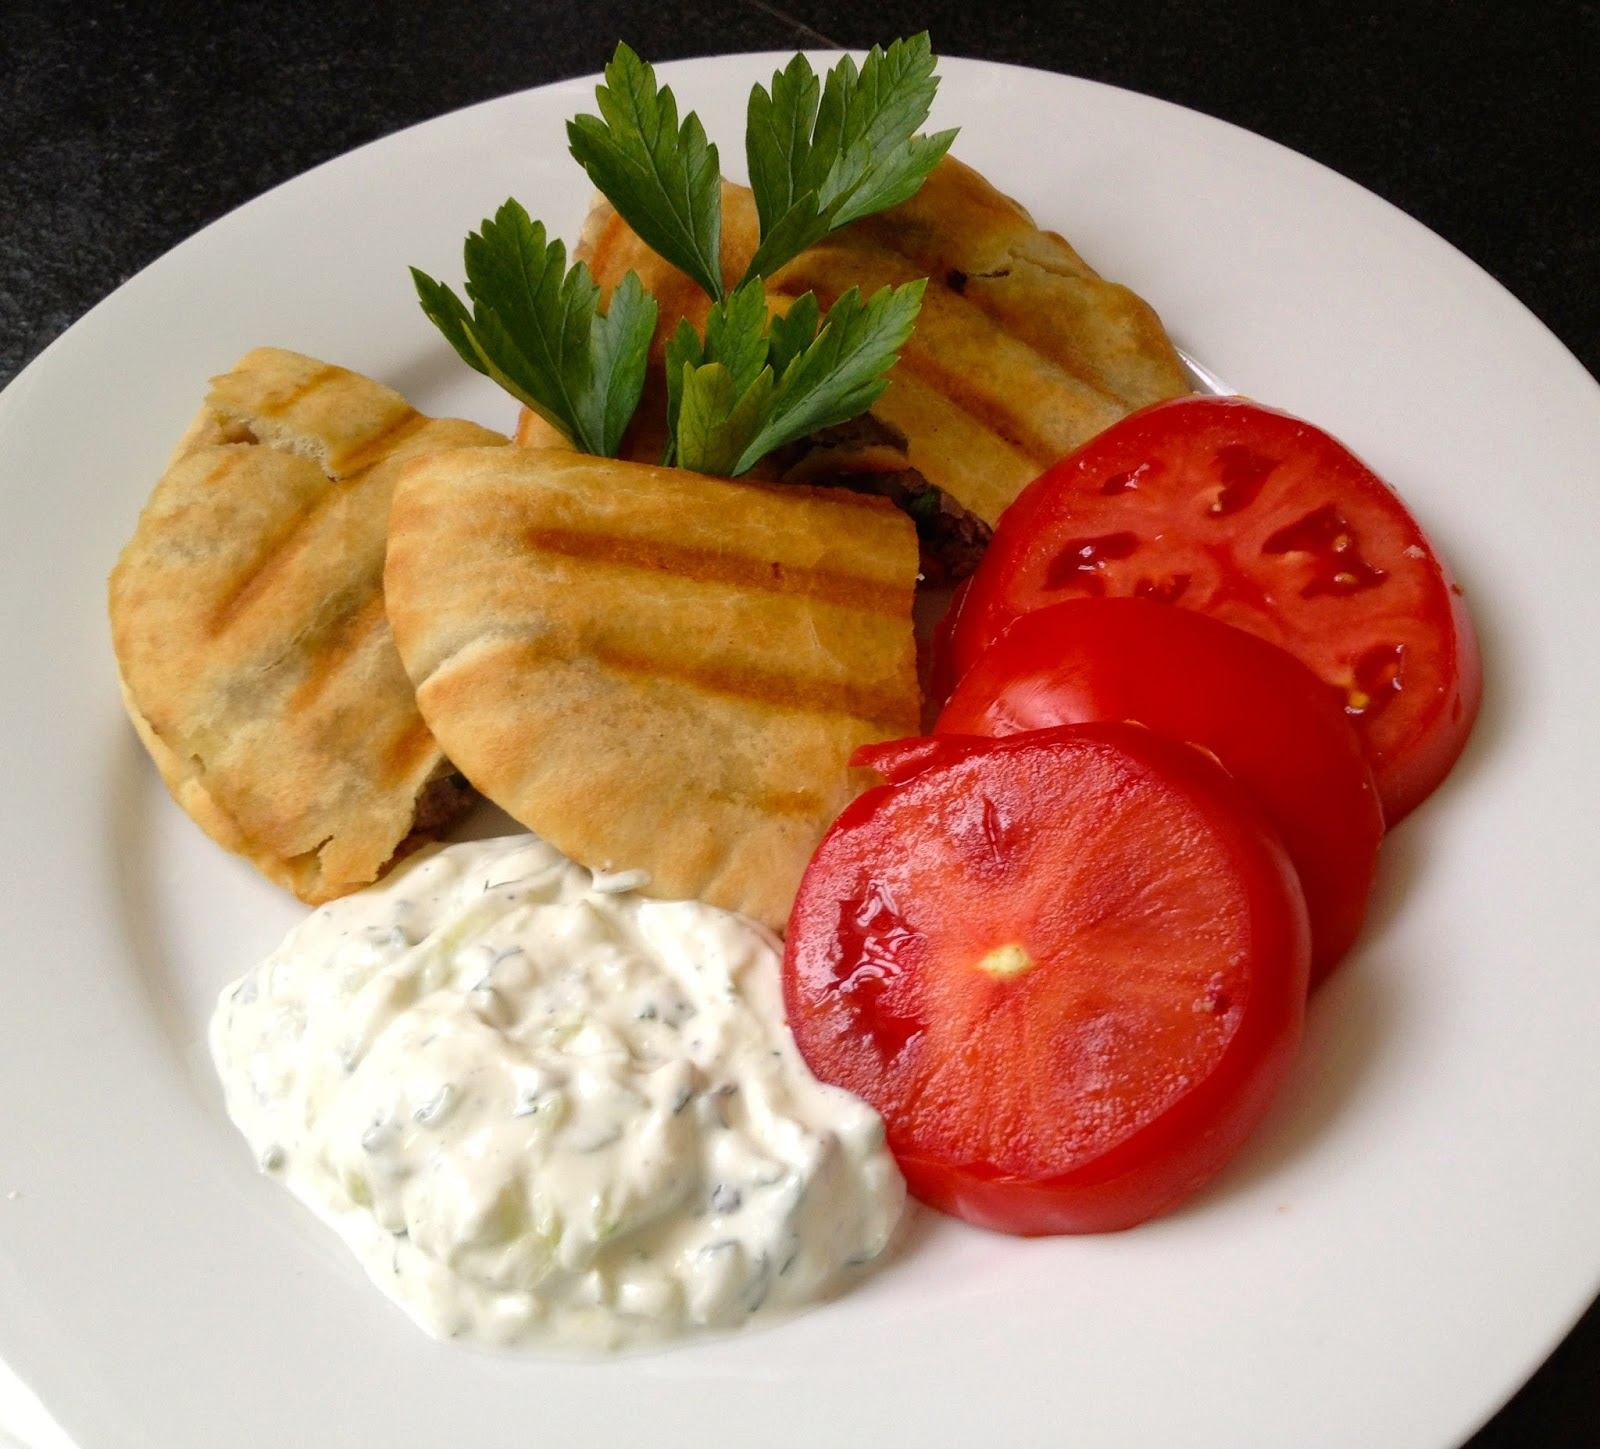 And Wonder Of Wonders, Ina Garten Provided Me With A Recipe That Made  Tzatziki A Whole Lot Easier To Make Than The Last Time I Made The Dish.